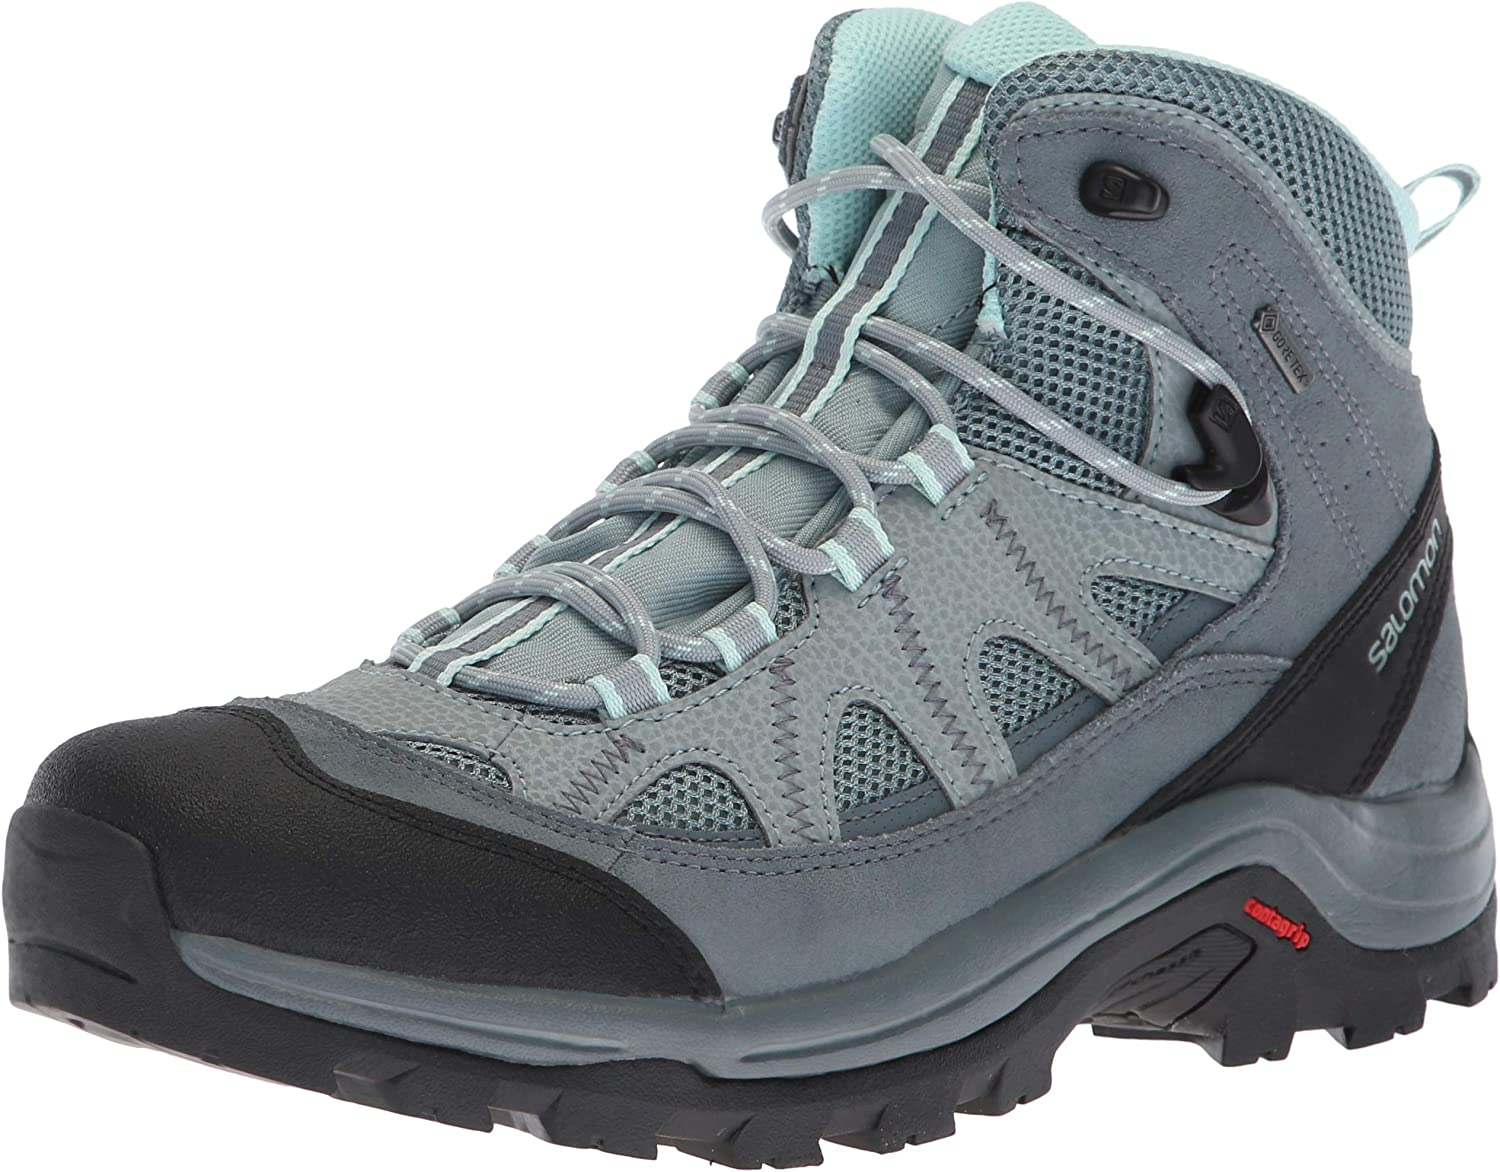 Salomon Damen Authentic LTR GTX W, W, W, Trailrunning-Schuhe, Wasserdicht  34f84f